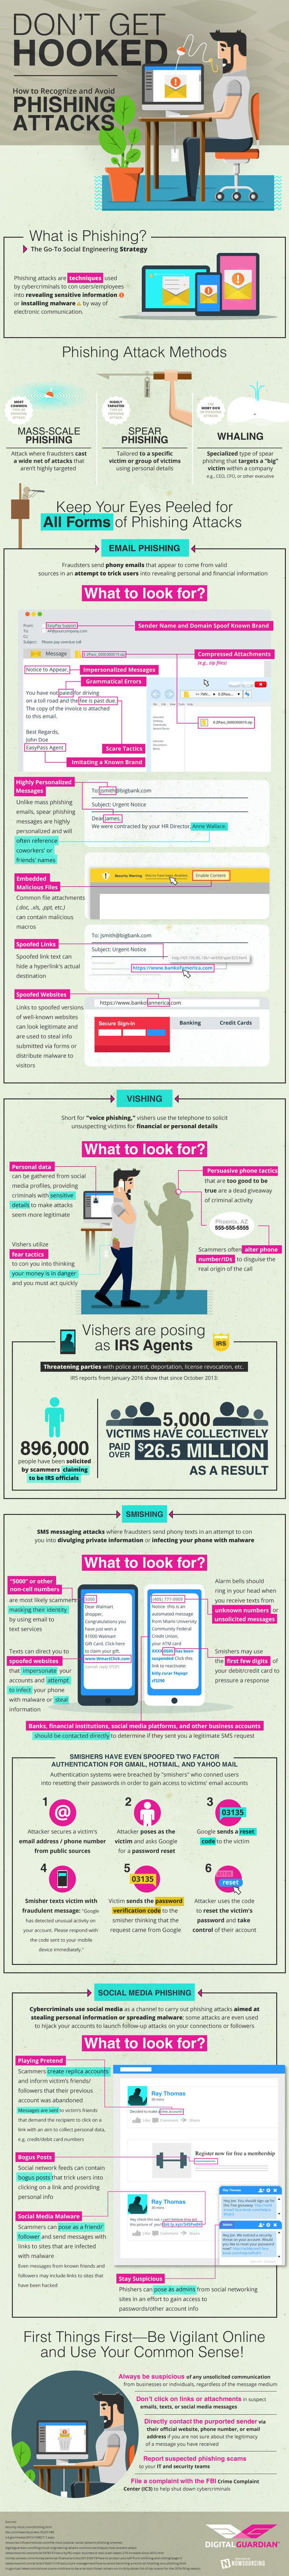 A recently-published infographic from Digital Guardian can help your employees recognize and steer clear of phishing, spear phishing, and social media attacks.